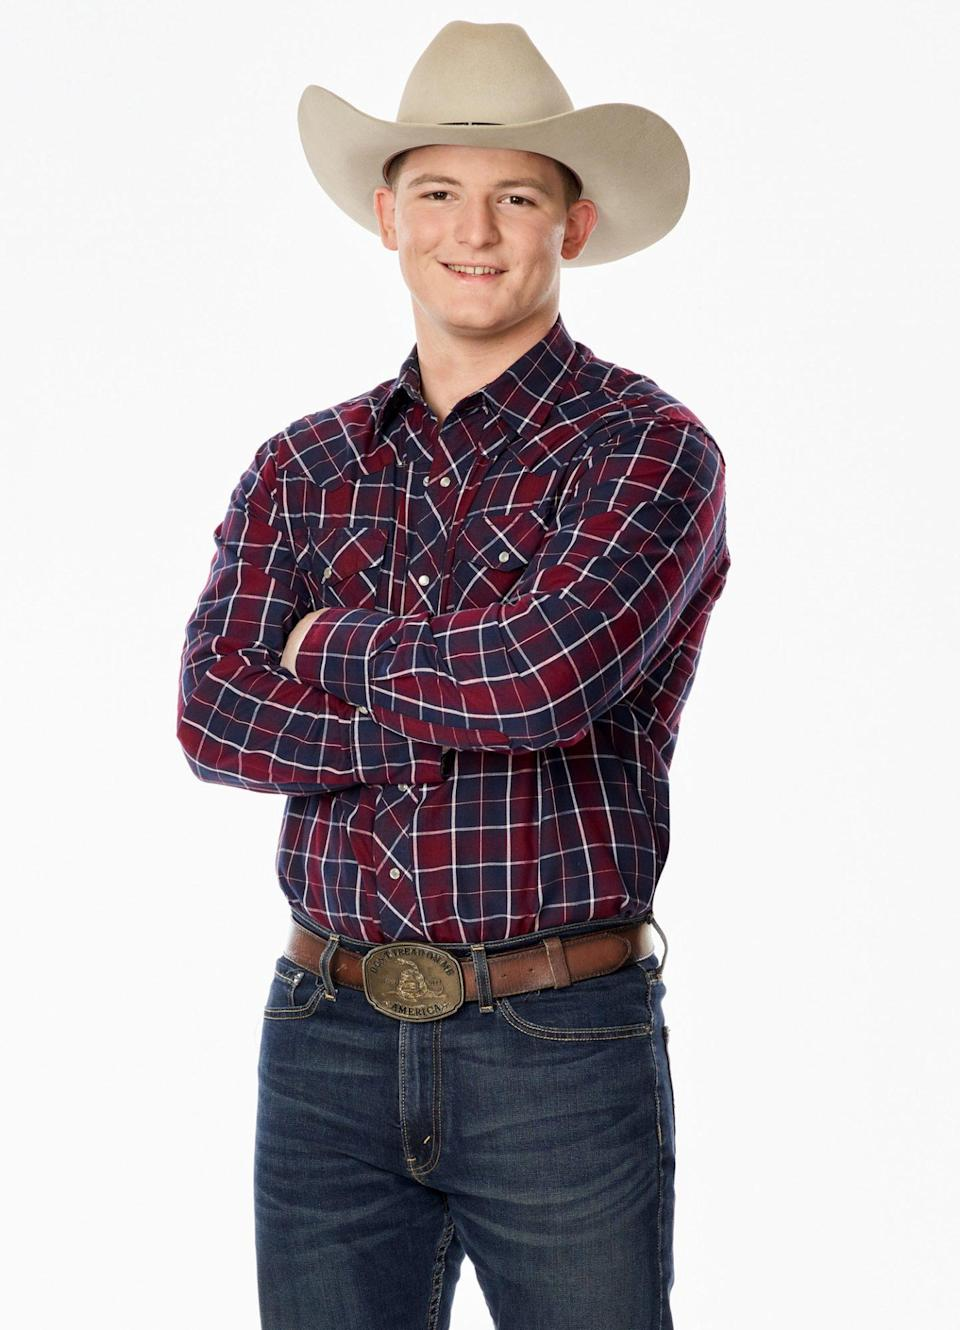 """<p><strong>Age:</strong> 17</p> <p><strong>Hometown:</strong> Coalfield, Tennessee</p> <p><strong>Resident:</strong> Oliver Springs, Tennessee</p> <p>Lively grew up in a small town in Tennessee and started singing in church. He learned to play the guitar when he was 13, and he now performs at local fairs and festivals. Outside of music, Lively stays busy with school and works two jobs as a farmer and as a dog groomer. He also makes time for his best friend Humphry, who is currently undergoing treatment for cancer. When Humphry lost his hair during chemotherapy, Lively shaved his own head in support of him and enjoys playing music to cheer him up. With Humphry's encouragement, Lively comes to <em>The Voice</em> to chase his music dreams beyond his small town. </p> <p>""""I am so excited to be part of Team Blake this season,"""" he says. """"I'm looking forward to learning from Blake, as well as my teammates. This entire experience has been a blessing, and I can't wait to see what happens next!""""</p>"""